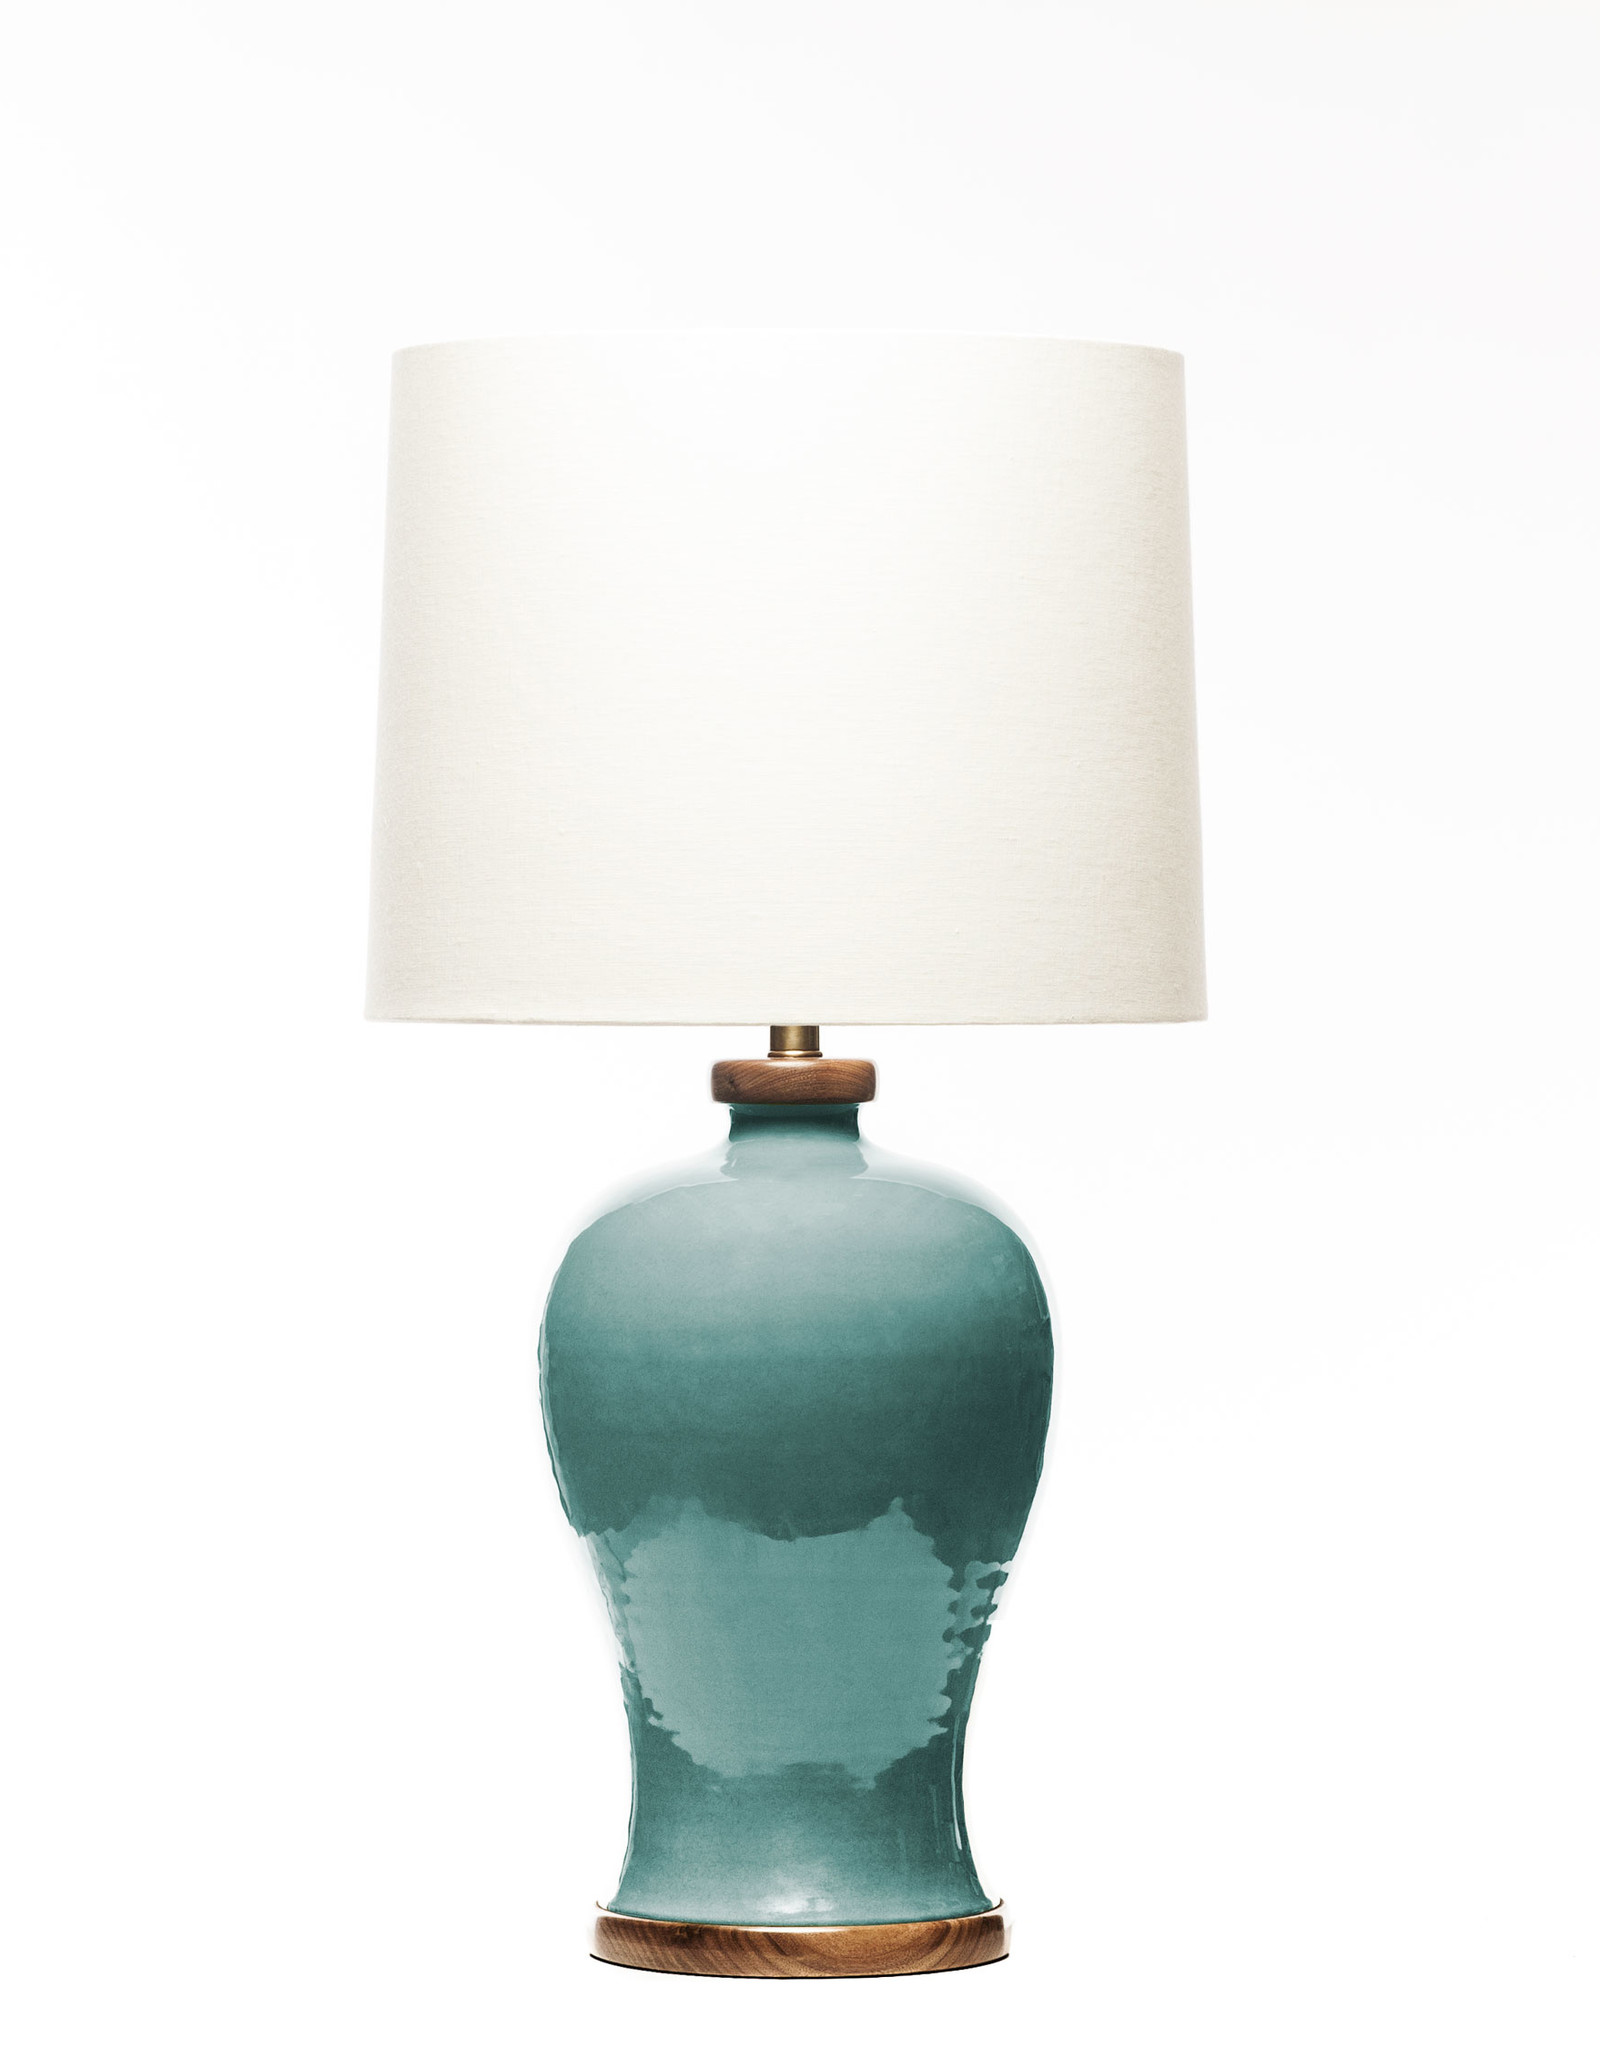 Lawrence & Scott Dashiell Table Lamp in Aquamarine